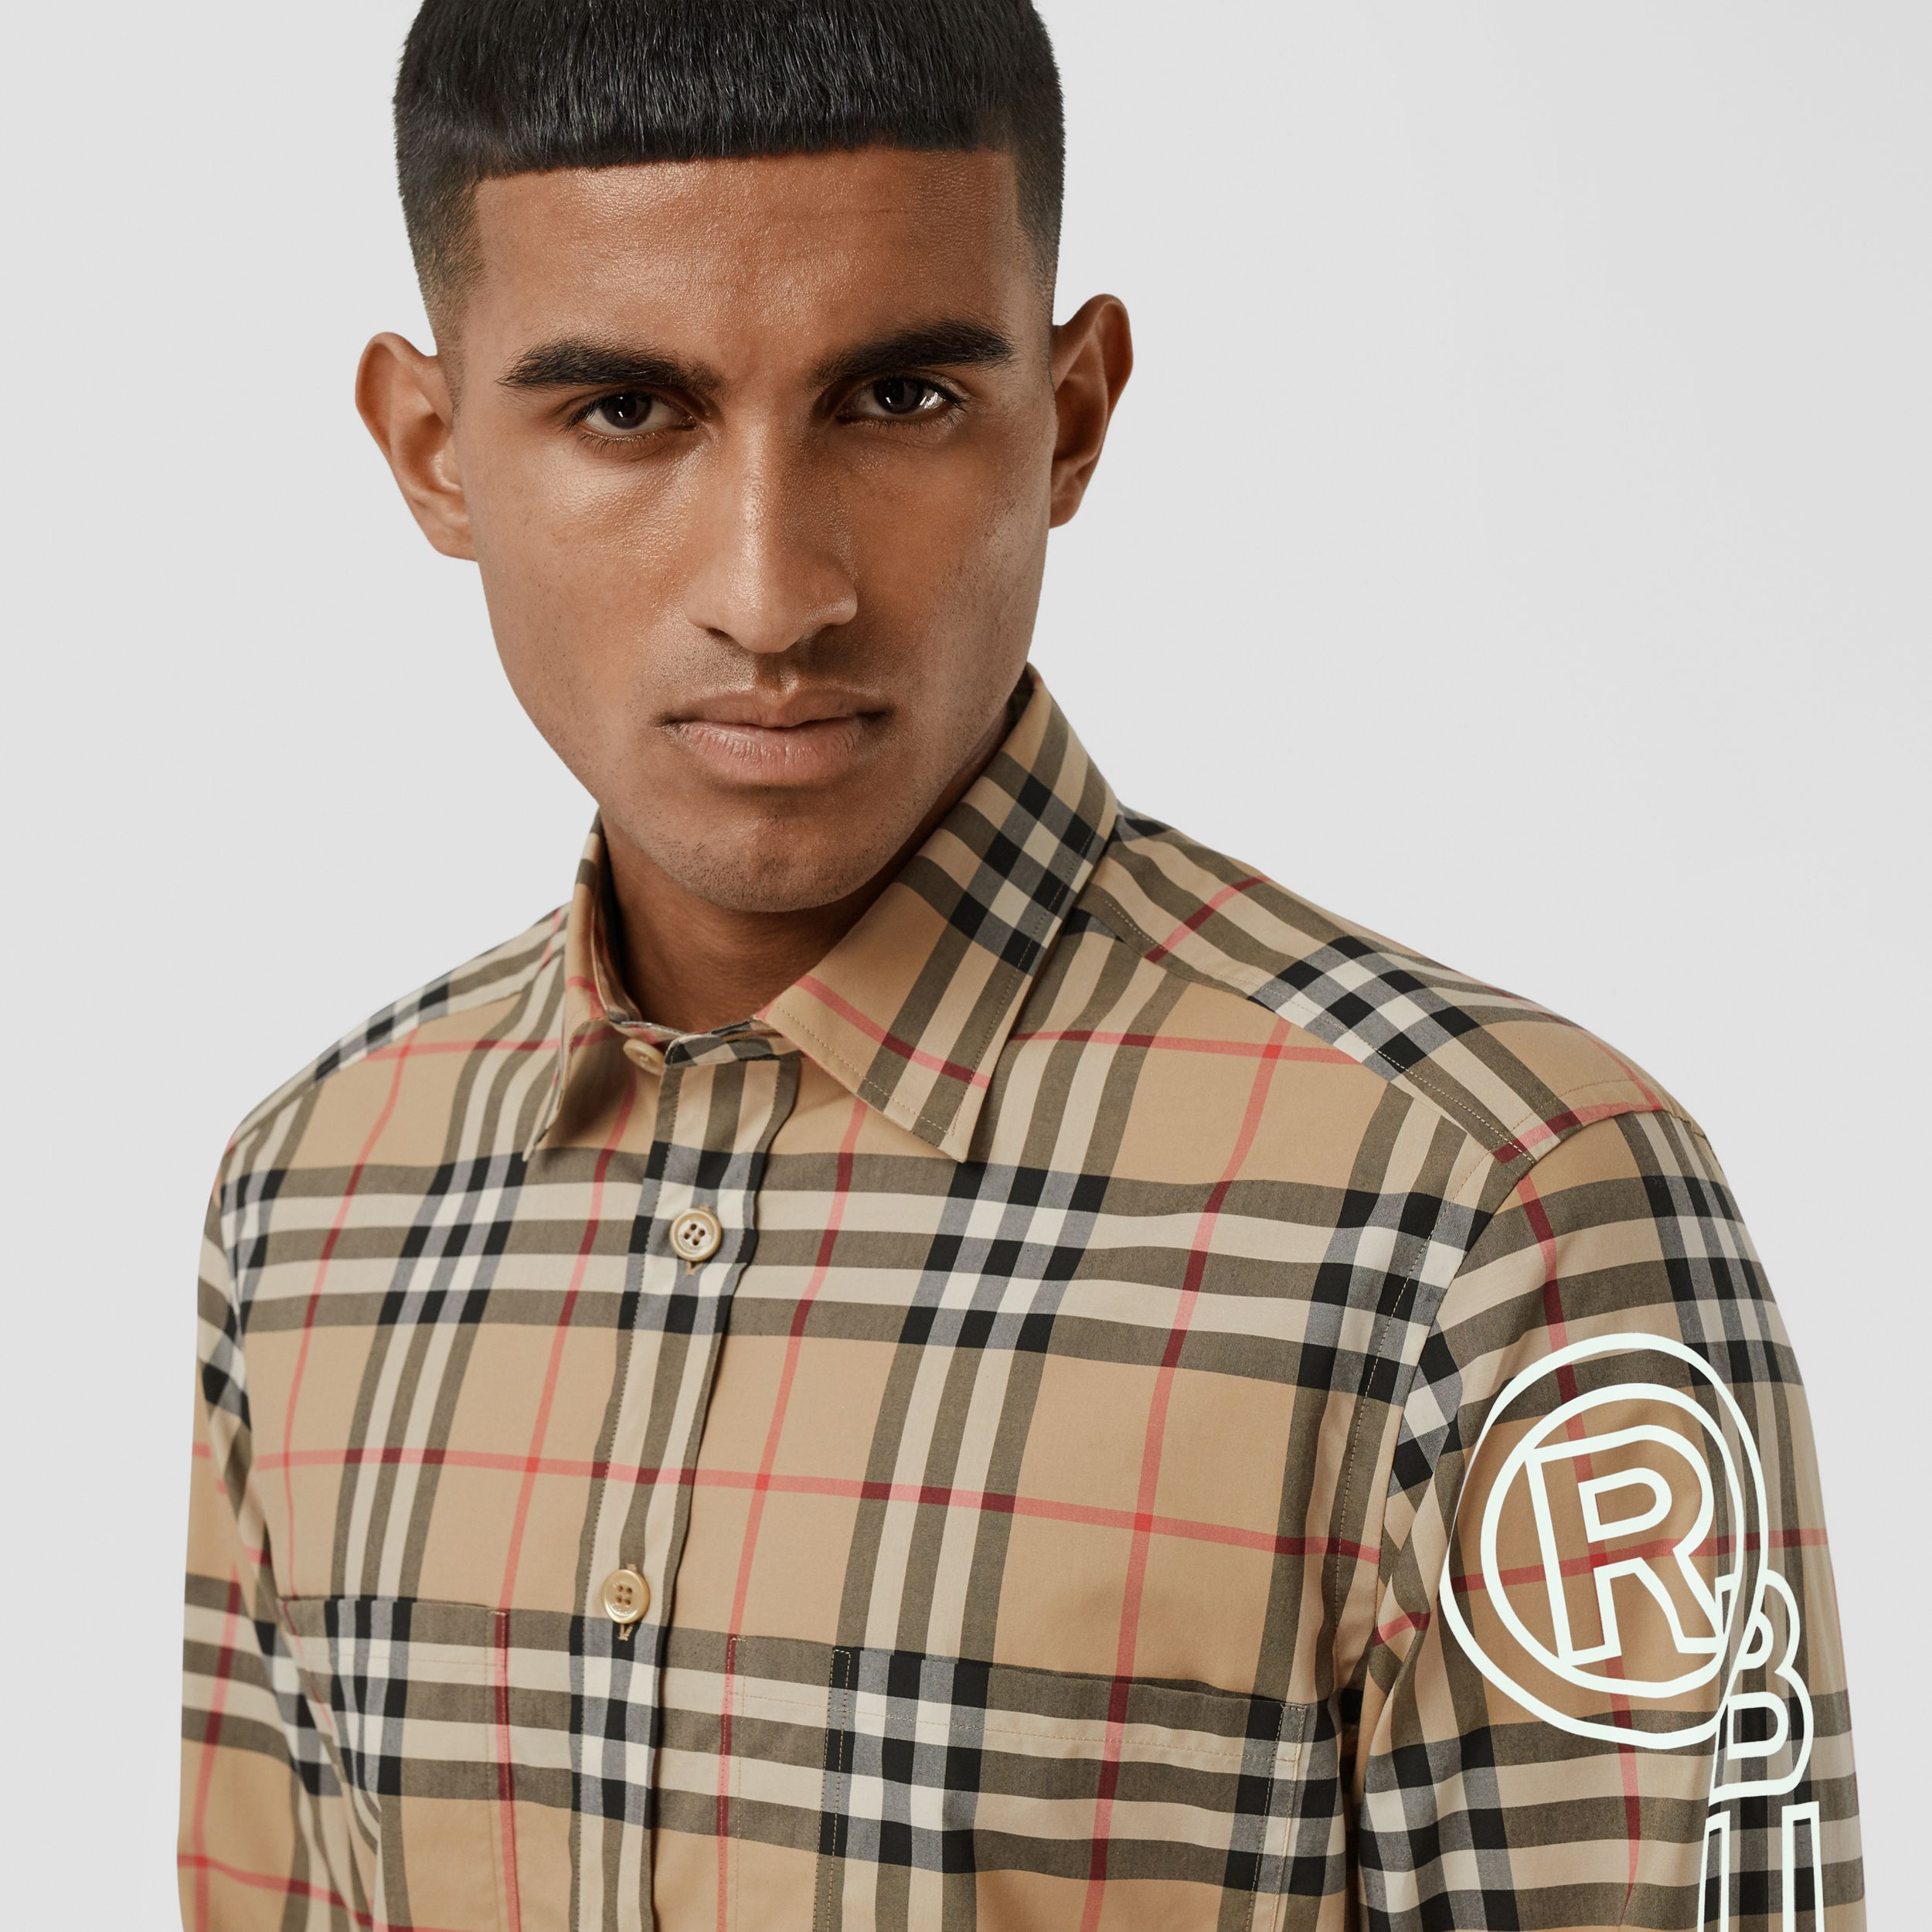 Logo Print Vintage Check Cotton Poplin Shirt in Archive Beige - Men | Burberry Australia - 2